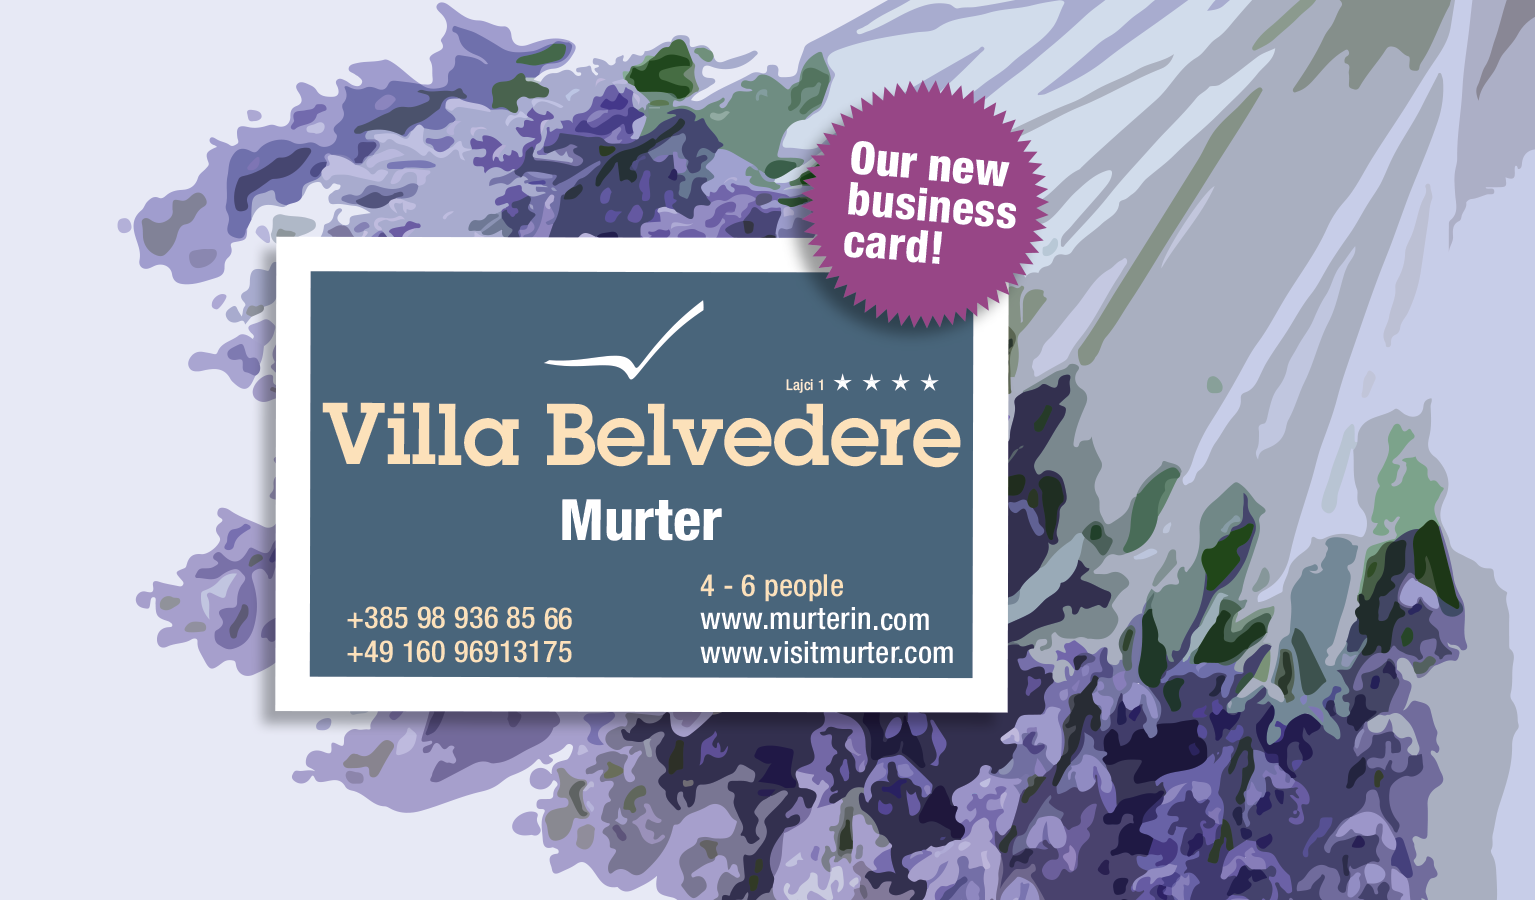 roth-grafik-design-Villa-Belvedere-Murter-business-card.png